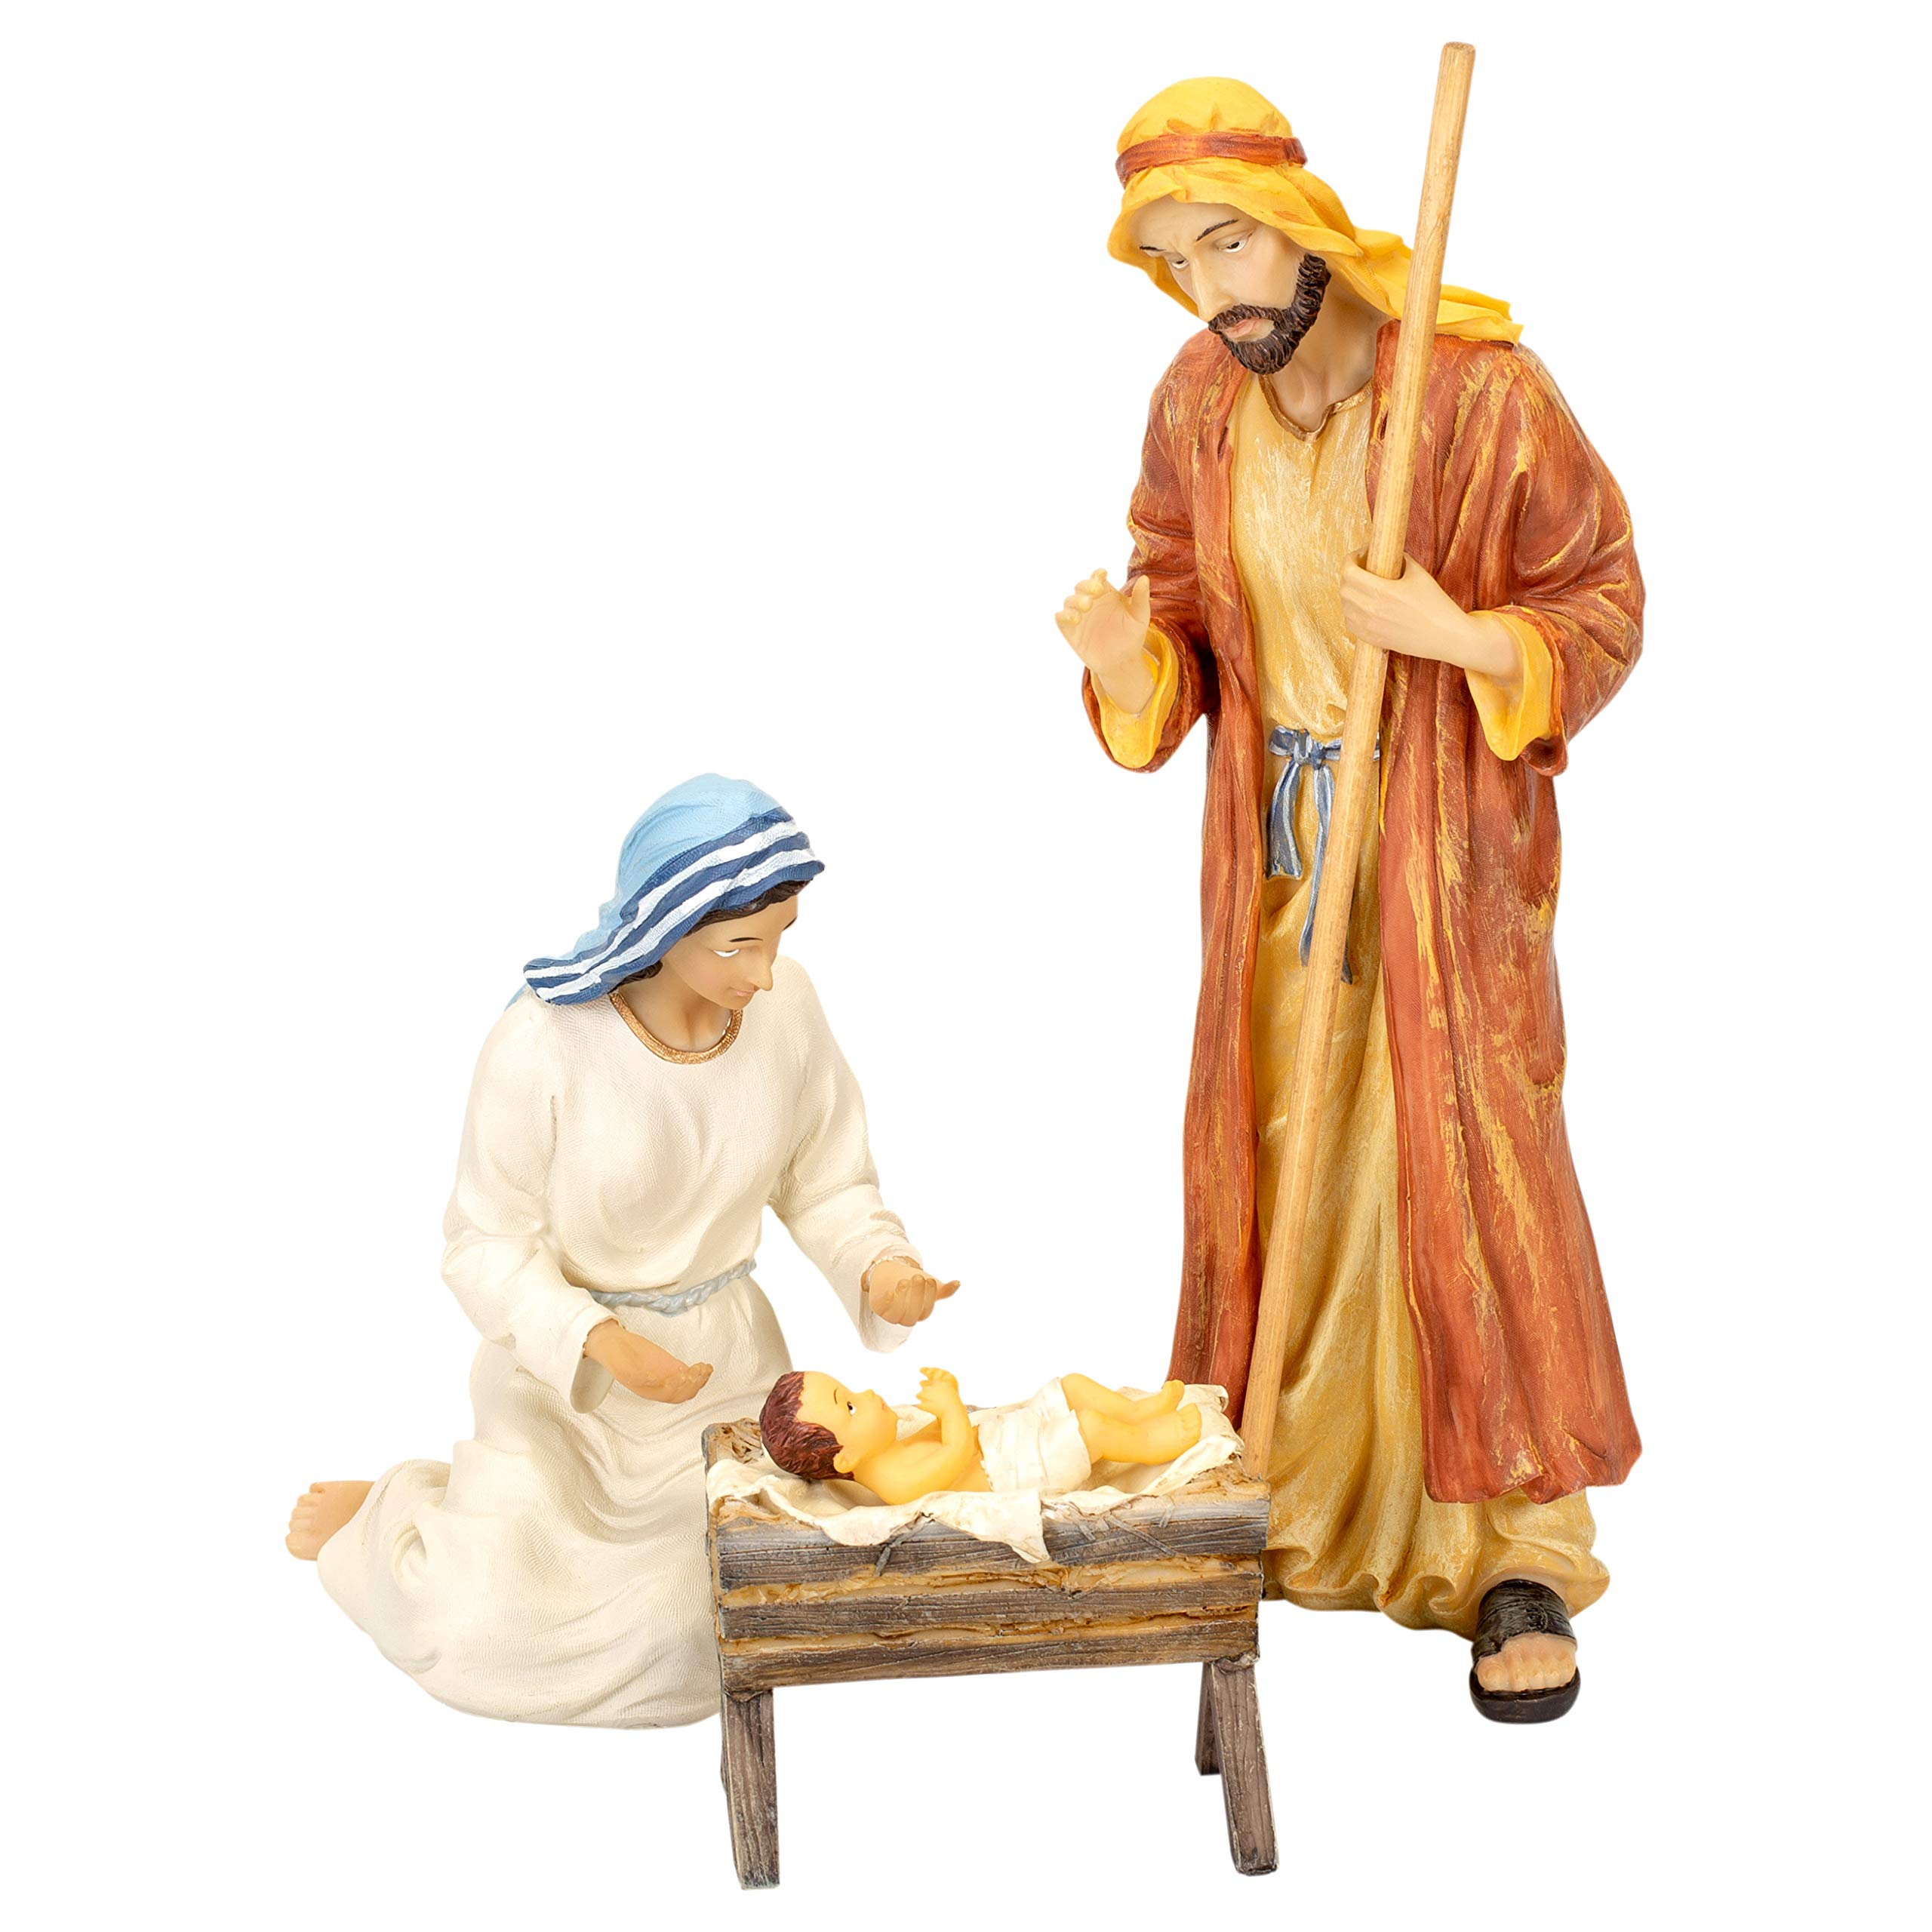 THREE KINGS GIFTS THE ORIGINAL GIFTS OFCHRISTMAS Holy Family 3 Piece Deluxe Set 12 inch Resin Stone Nativity Figurines